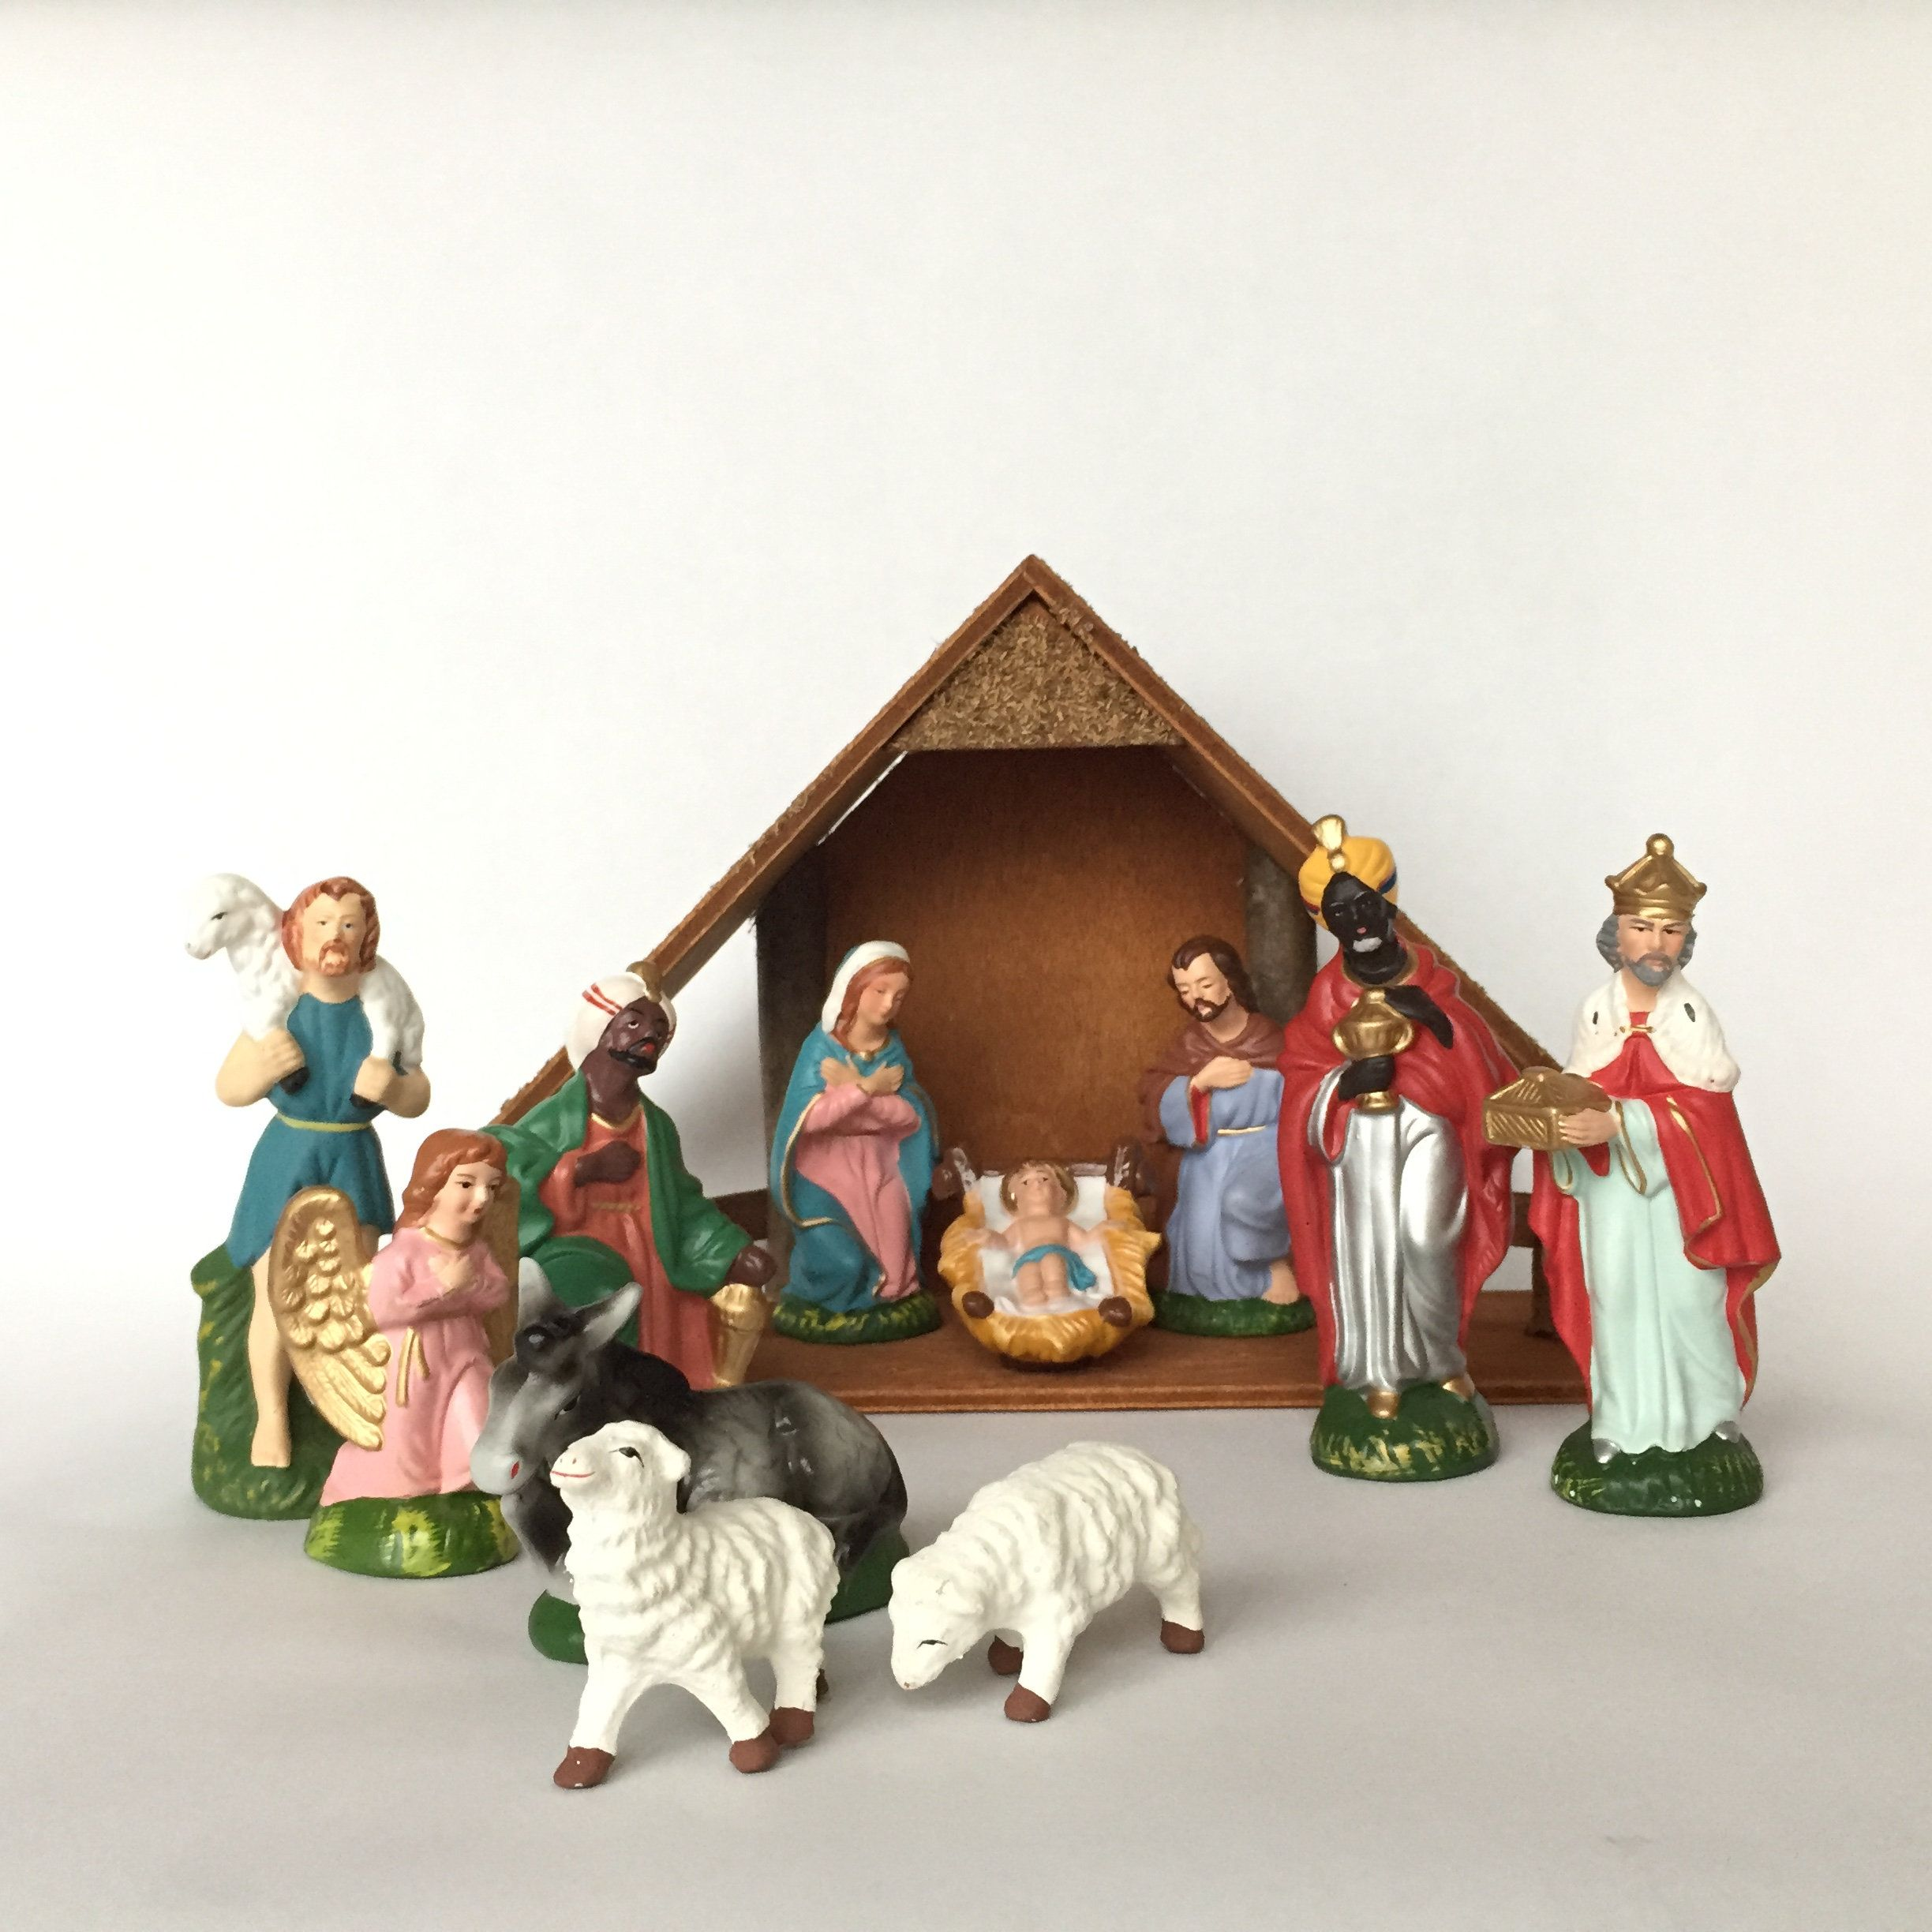 27 12 Pc Heaven S Majesty Nativity Set With Removable Jesus Nativity Set Outdoor Nativity Scene Nativity Scene Display